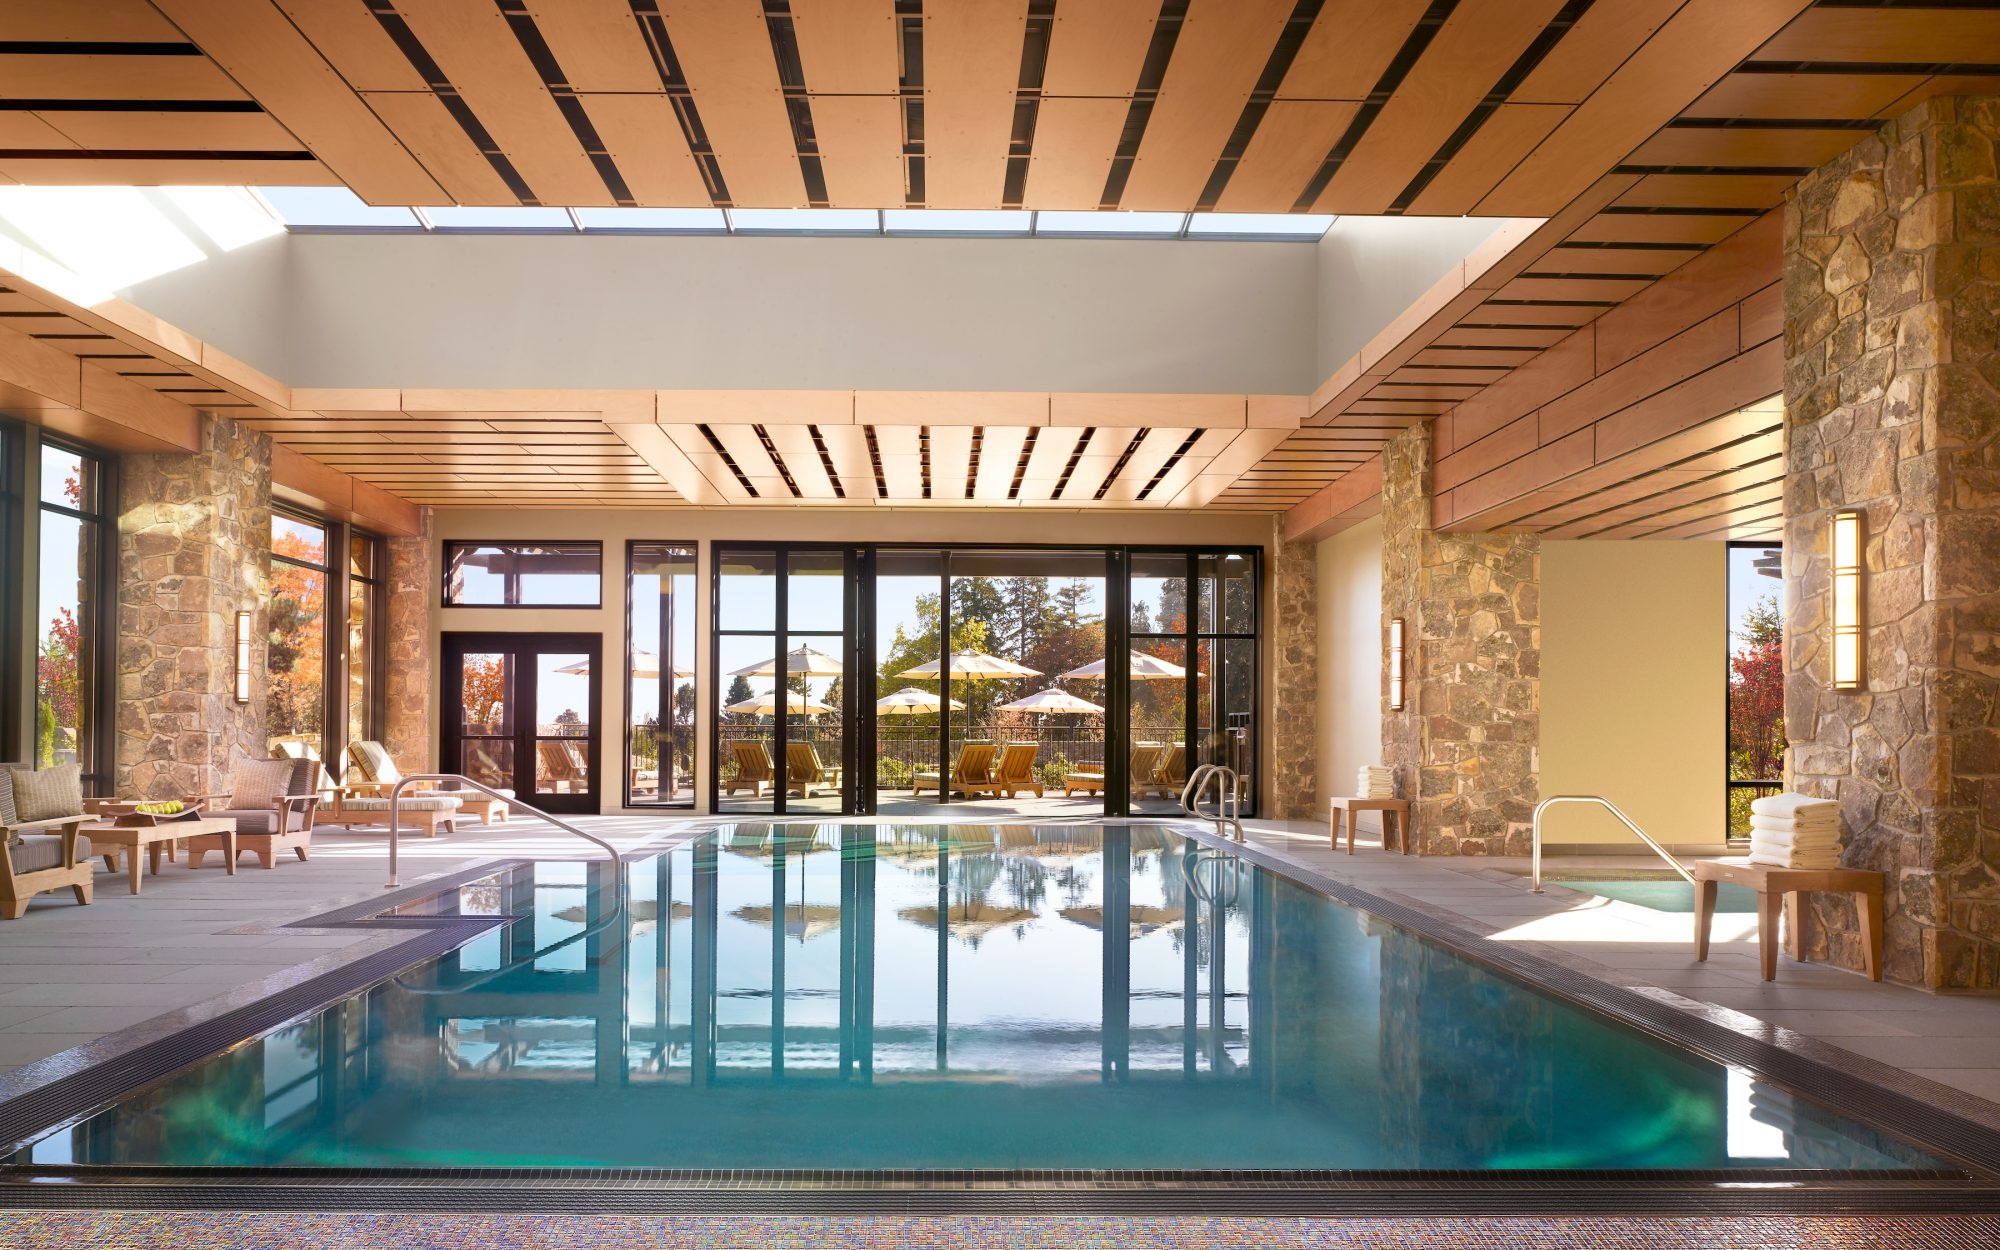 You might think Oregon's best hotel would be in Portland, but T+L readers voted the Allison Inn & Spa the state's top hotel, with a score of 95.250. The sprawling eco-friendly property, situated in the idyllic Willamette Valley wine country, is home to seven acres of grapevines, fields, and gardens. The property certainly makes use of the land's bounty—the Jory restaurant serves farm-to-table dishes and offers forty wines by the glass. The spa even uses local berries, roses, wine, and honey in its treatments. If all that wasn't enough, the luxurious inn is LEED-gold certified.